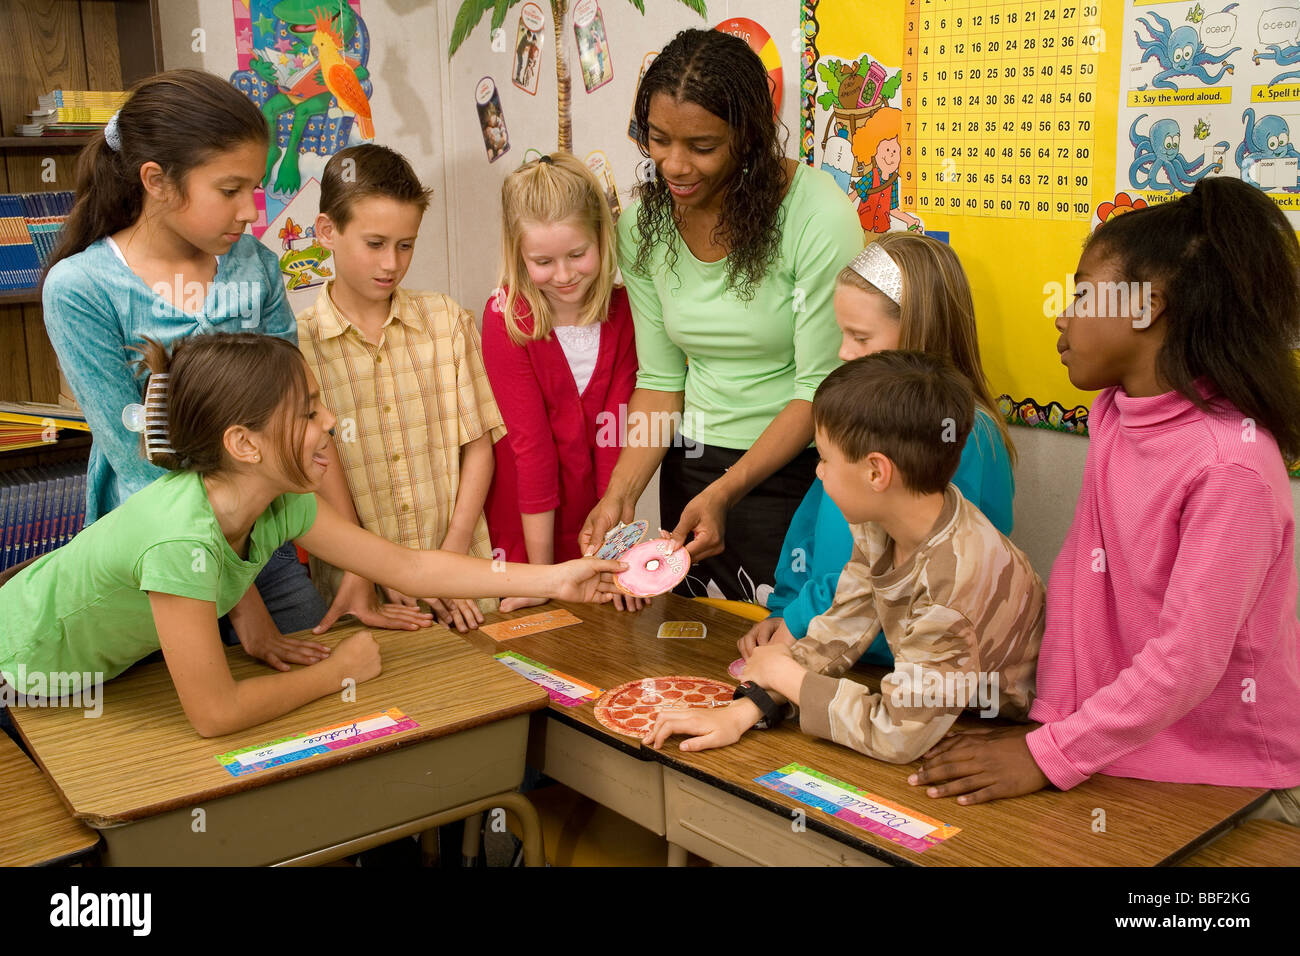 racial diversity racially diverse multicultural multi cultural interracial Teacher teaching concept division children - Stock Image